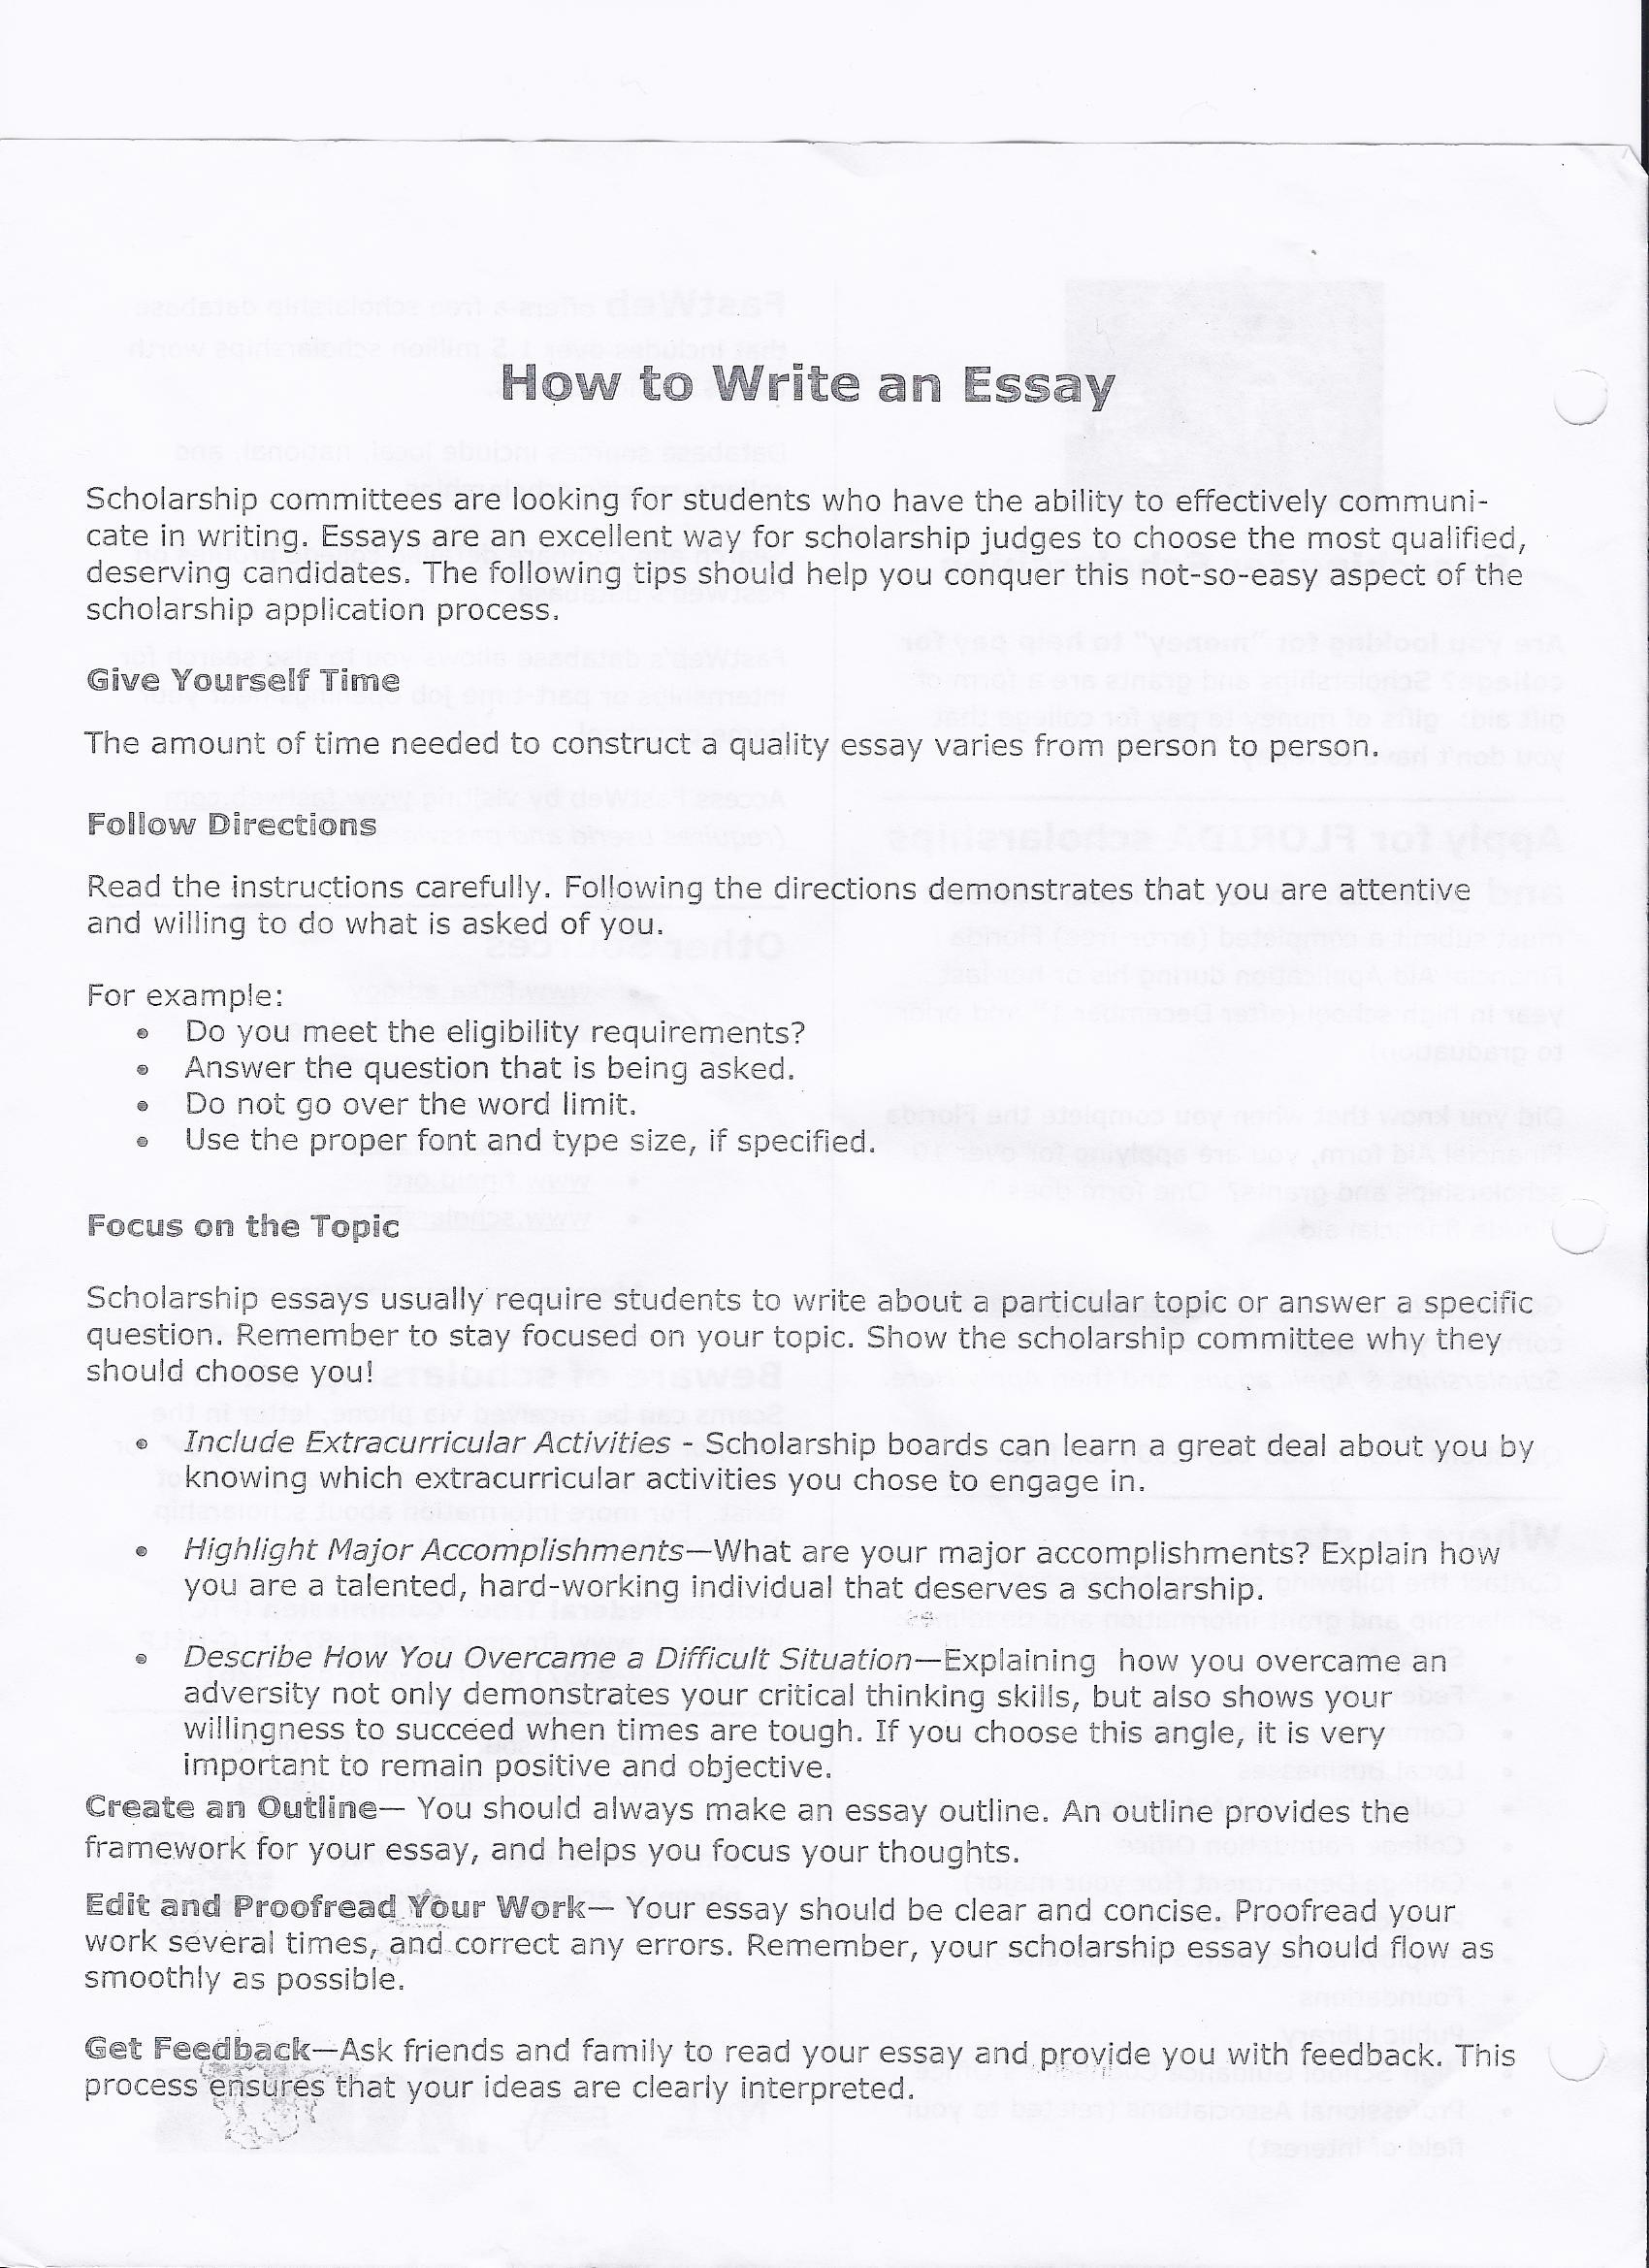 description of the beach essay essay on personality development  collage essay collage essay collage essay jonathon lay personal collage essaycollage essay buy key stage geography descriptive essay on the beach